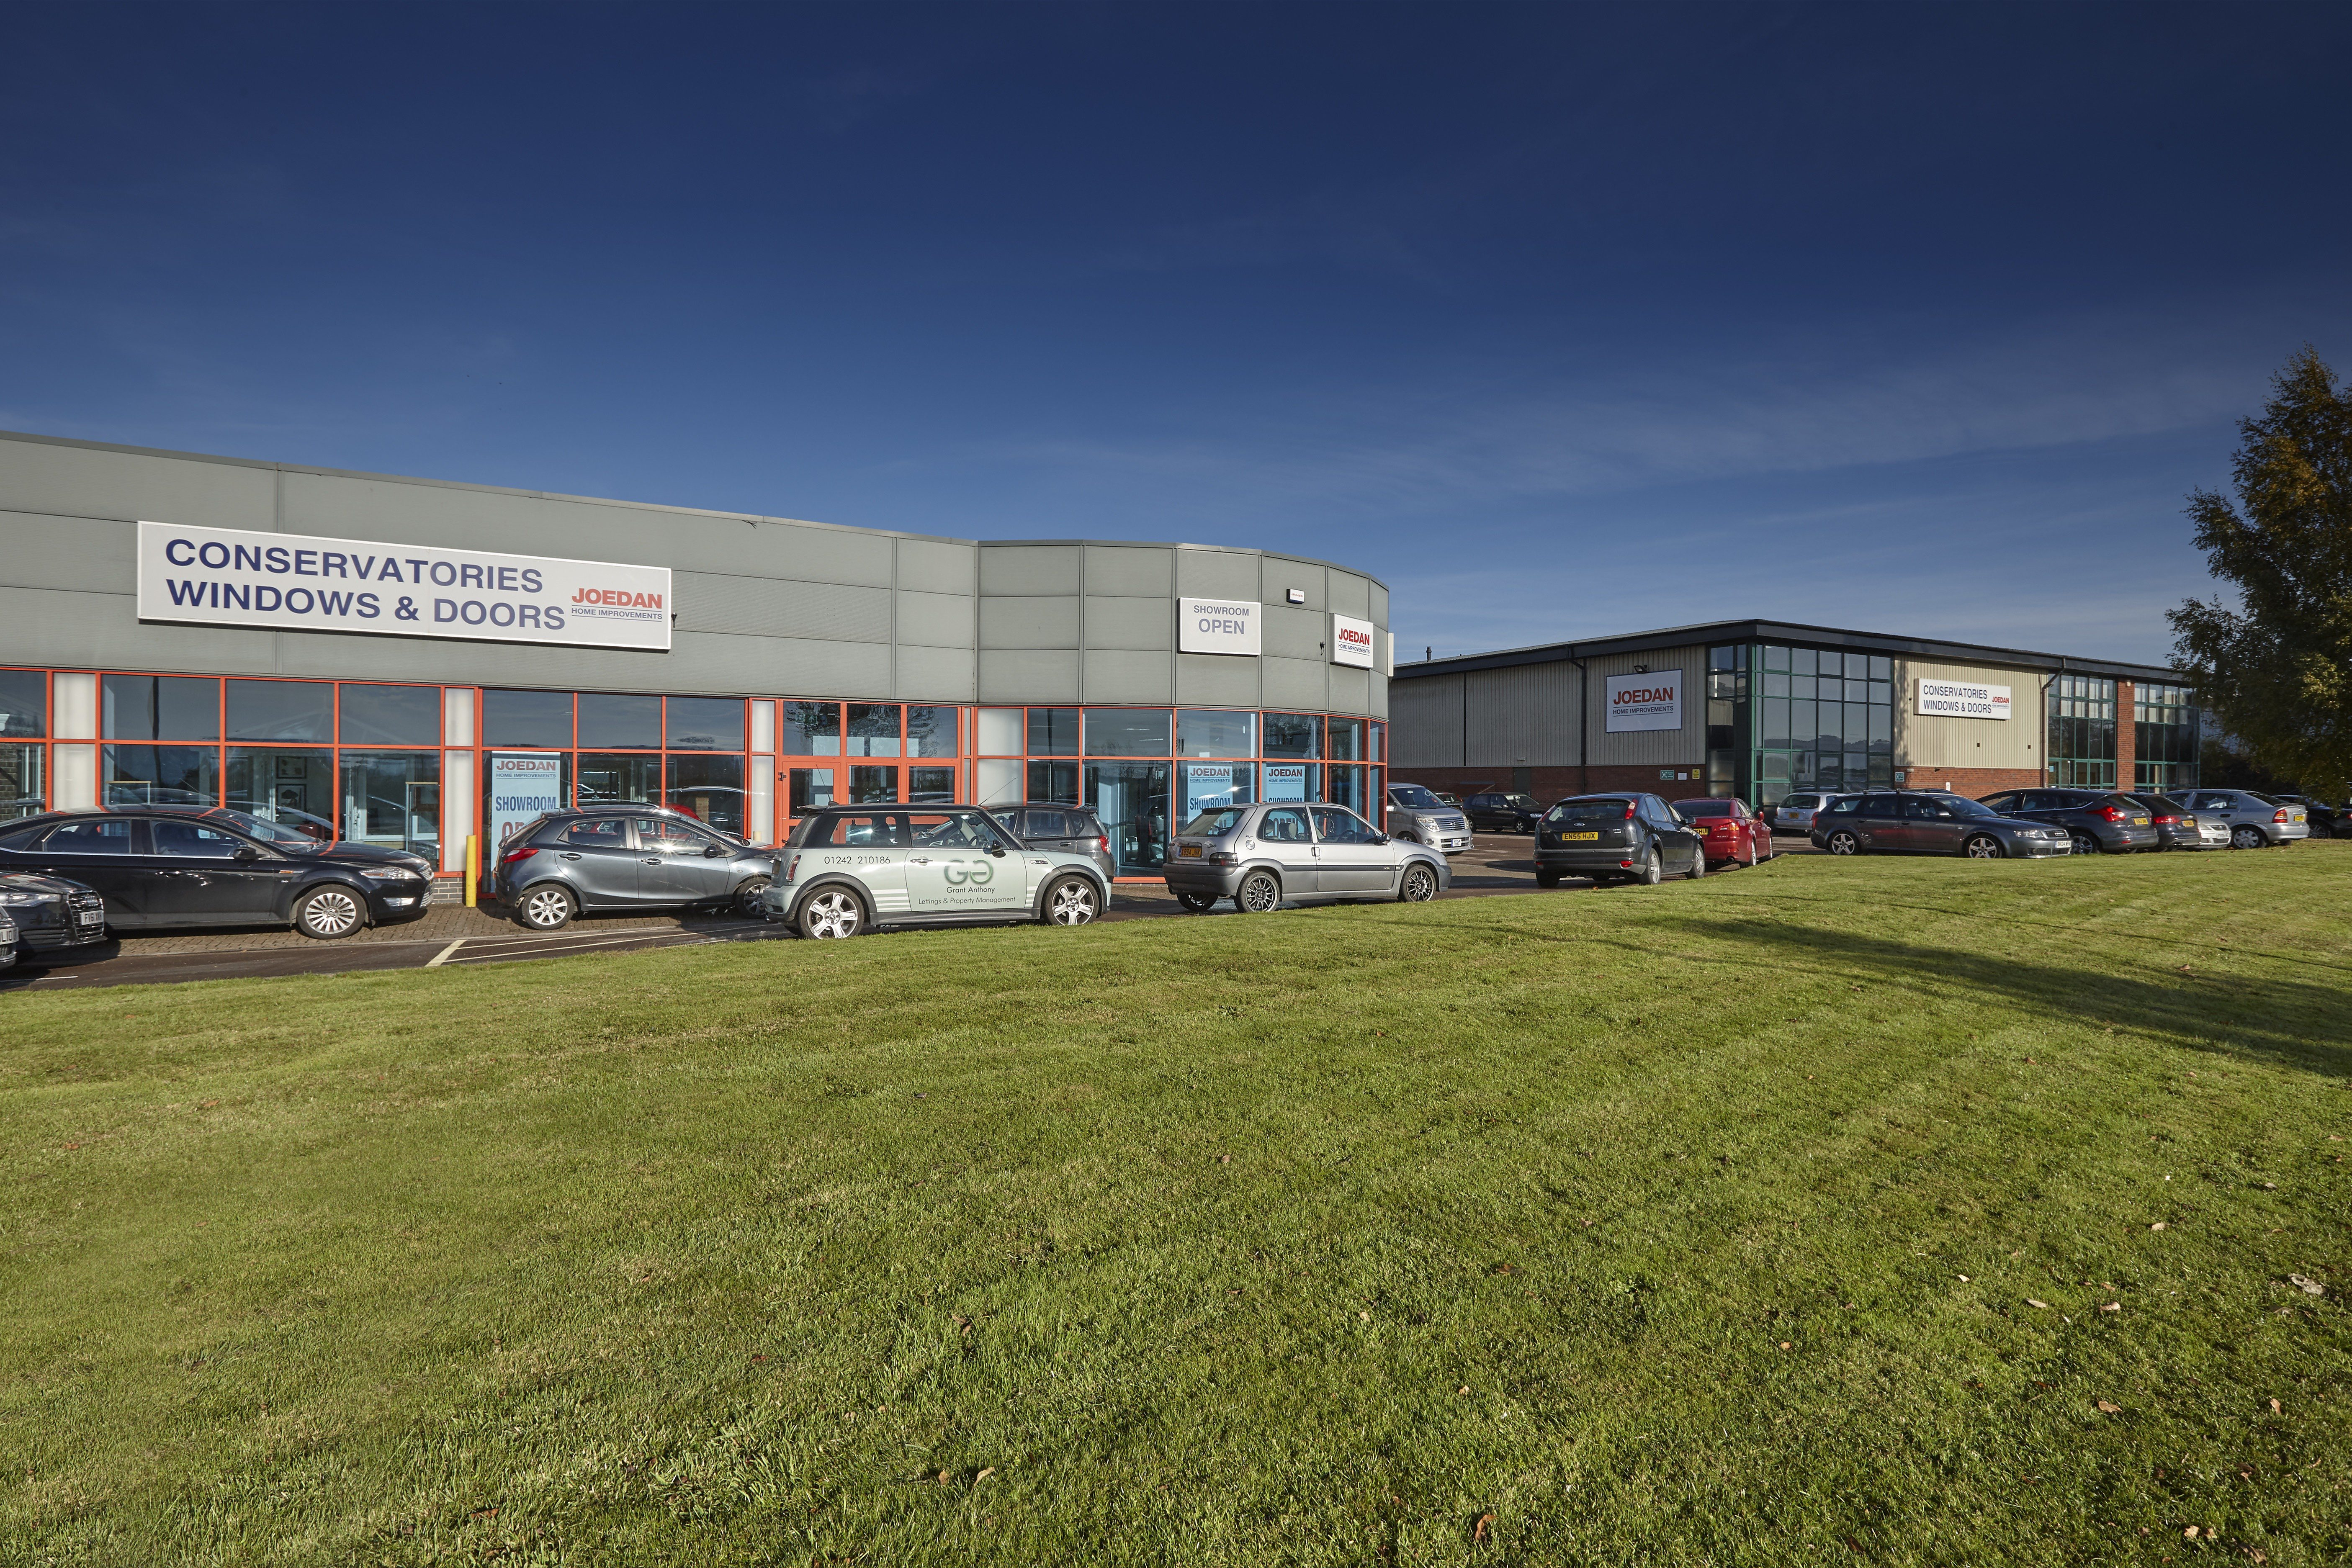 LogiKal - BMA294 Joedans showroom and factory premises near Tewkesbury